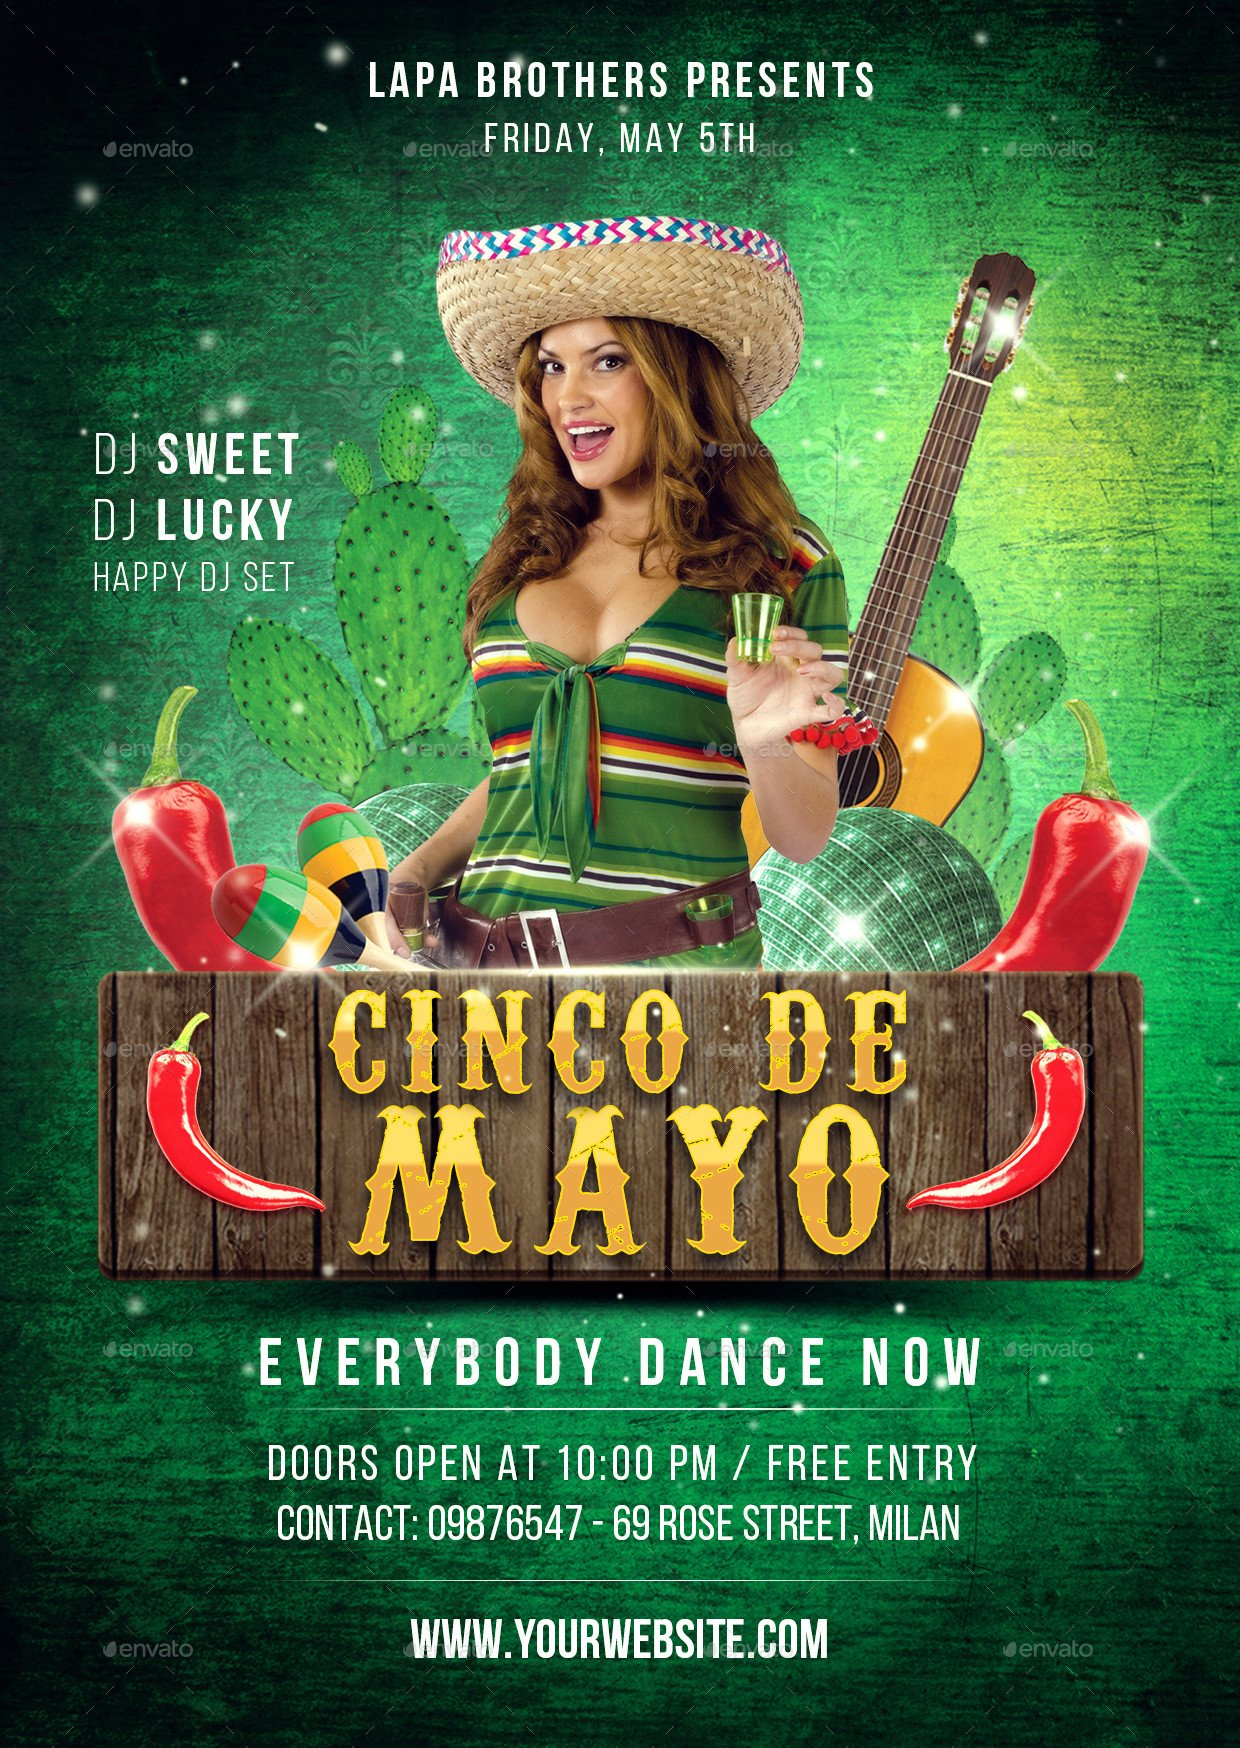 Cinco De Mayo Flyer Cinco De Mayo Flyer Template by Lapabrothers